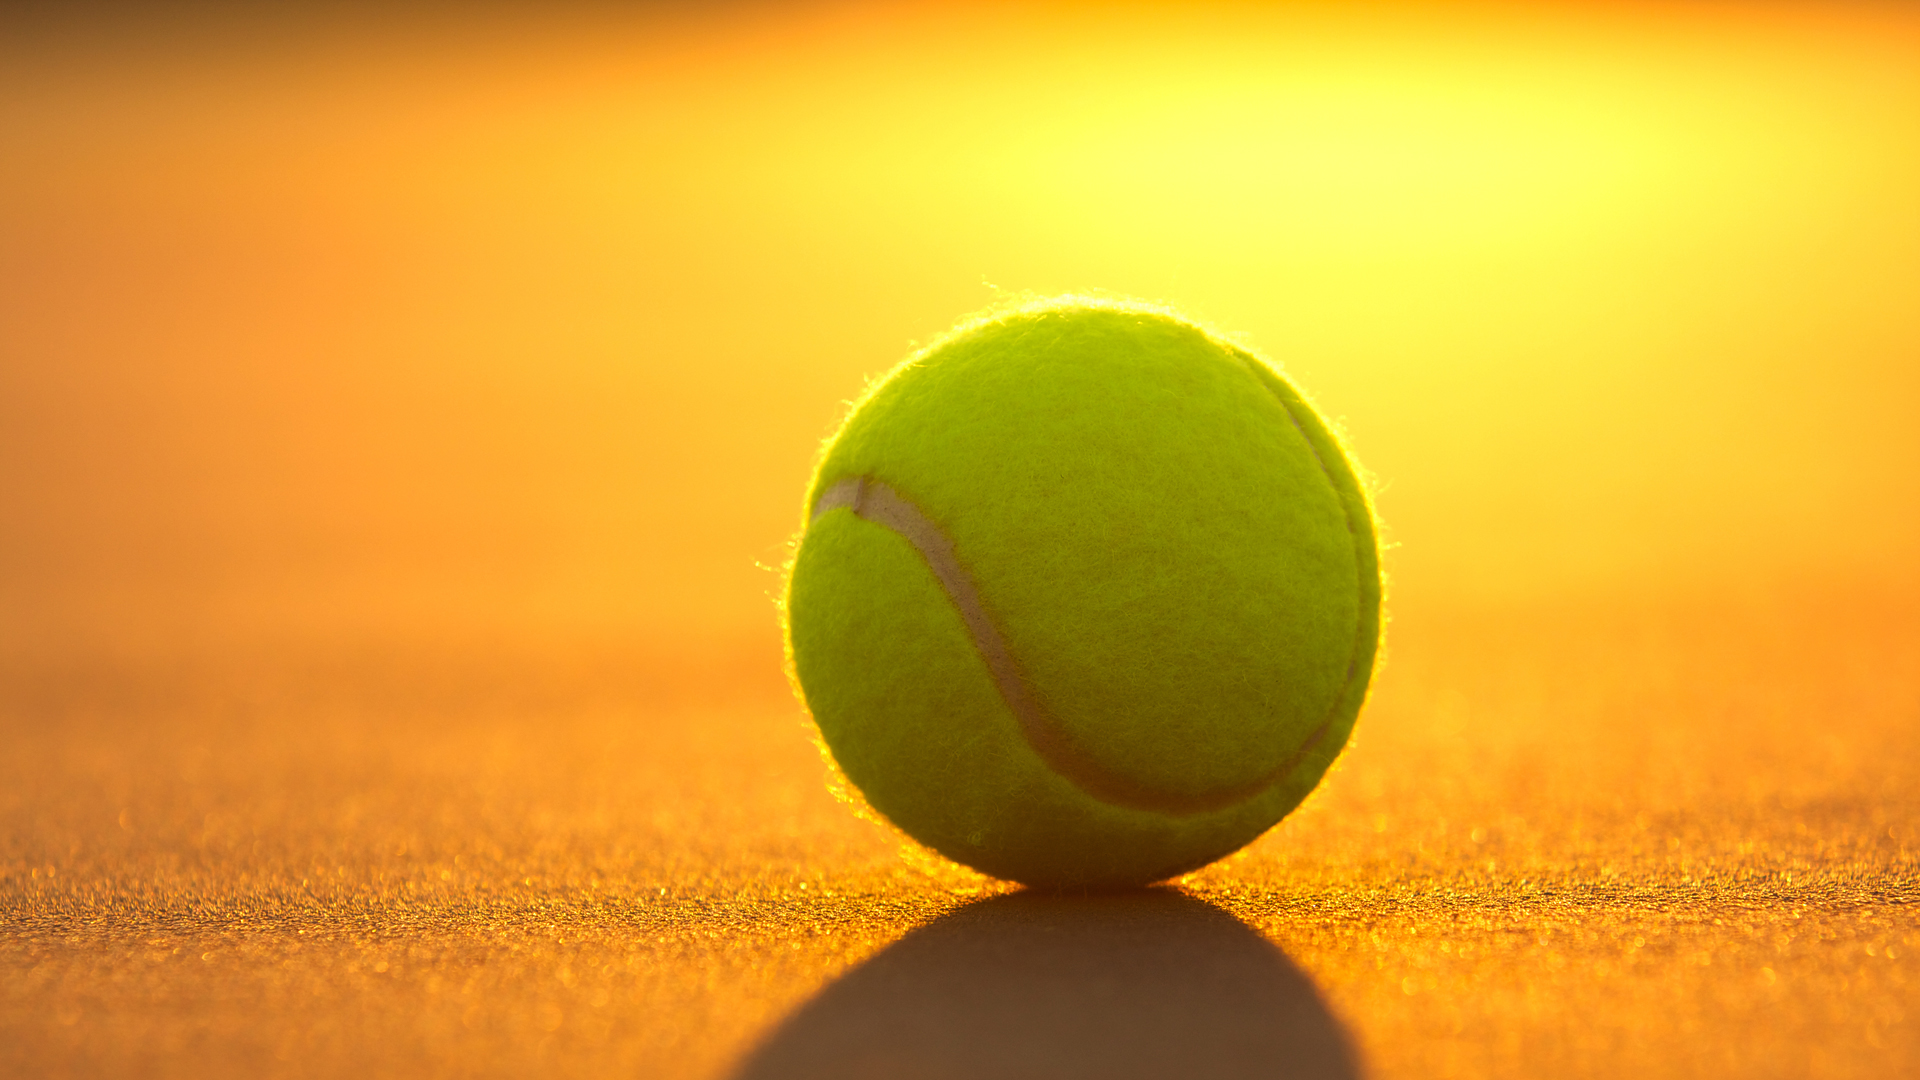 beautiful tennis wallpaper 44870